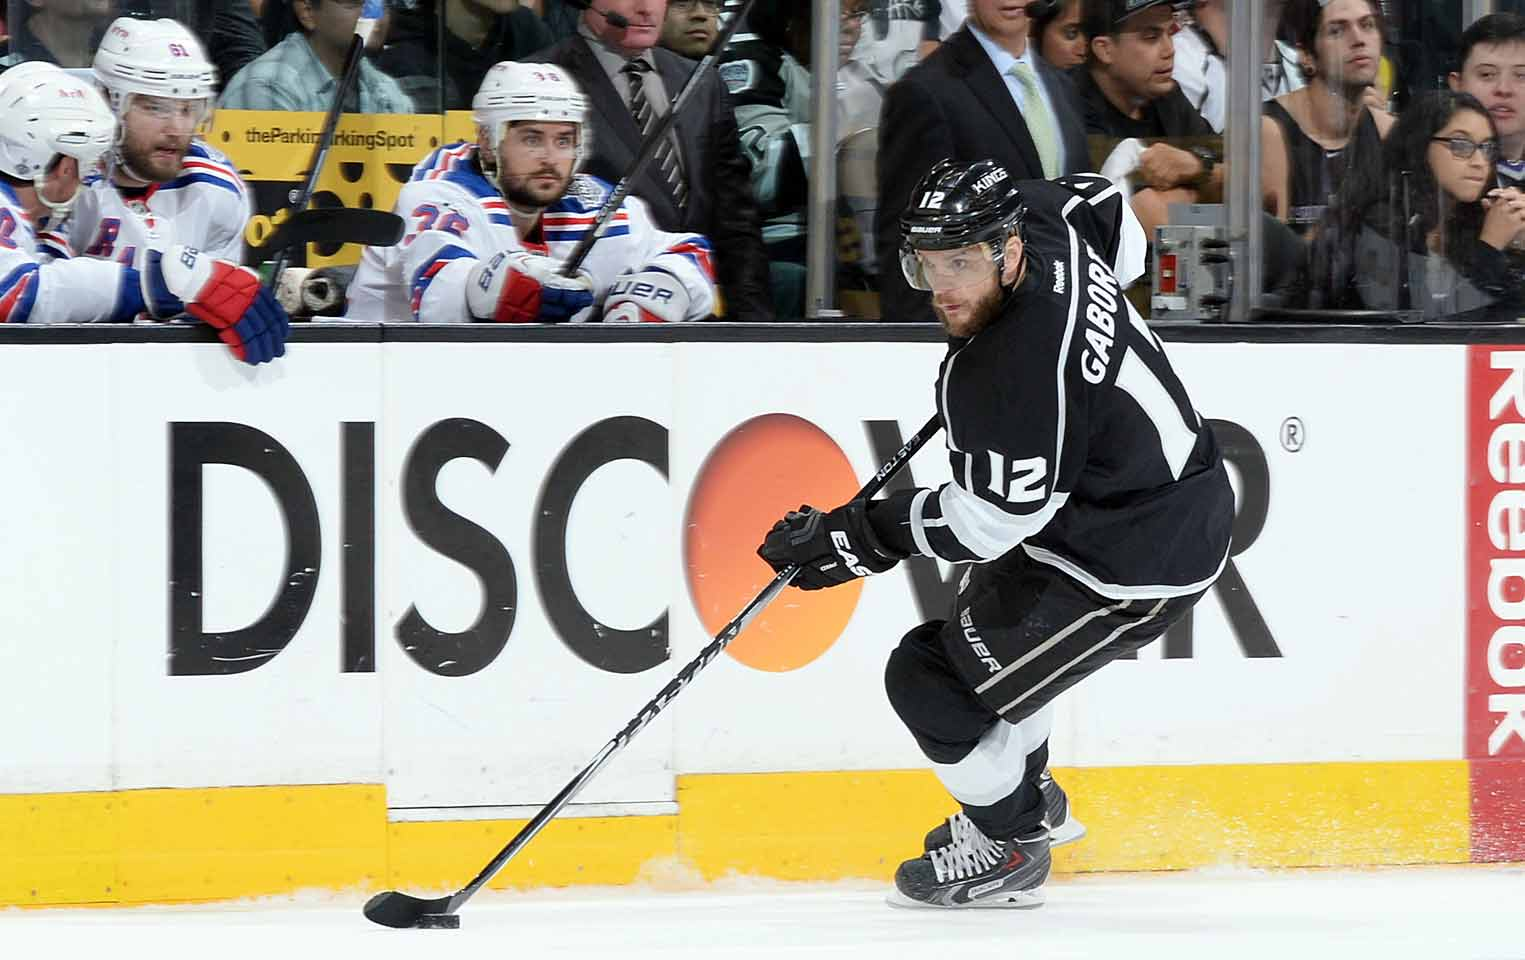 Seeking offensive punch, the Kings acquired the talented but oft-injured sniper from Columbus on March 5, 2014 for forward Matt Frattin and two draft picks. Gaborik, who had six goals and 14 points in 34 games during a regular season marred by a broken collarbone, proved to be the tonic that L.A. needed. He went on the lead the NHL in postseason goals (14), the most by a King in one playoff year since Wayne Gretzky, and became the first player ever to score a tying goal in the final 10 seconds of regulation and then win a playoff game in overtime (vs. Anaheim) as the Kings rolled to their second Stanley Cup in three years.